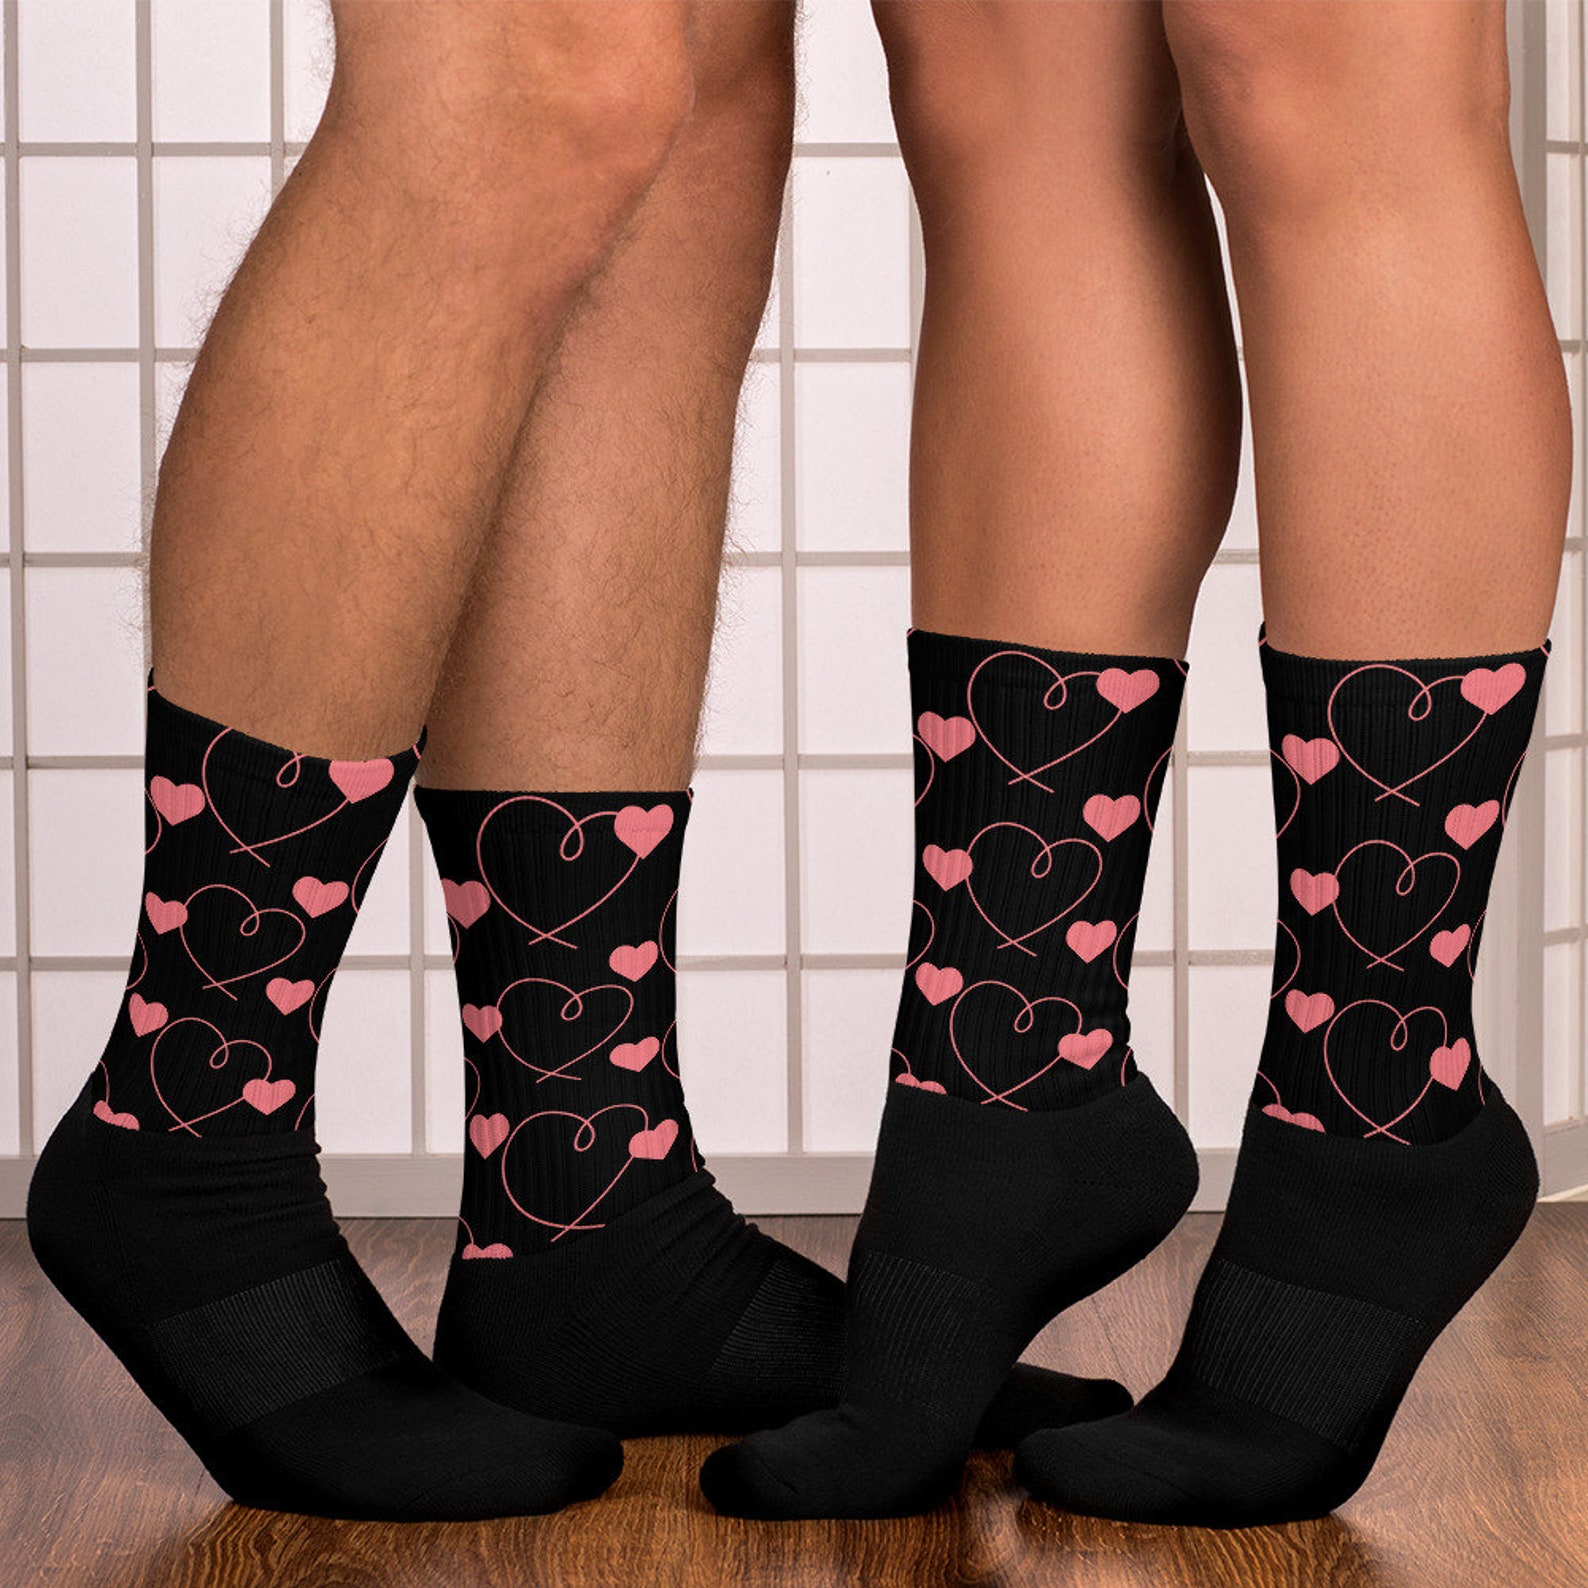 Heart Socks for Men Page Two